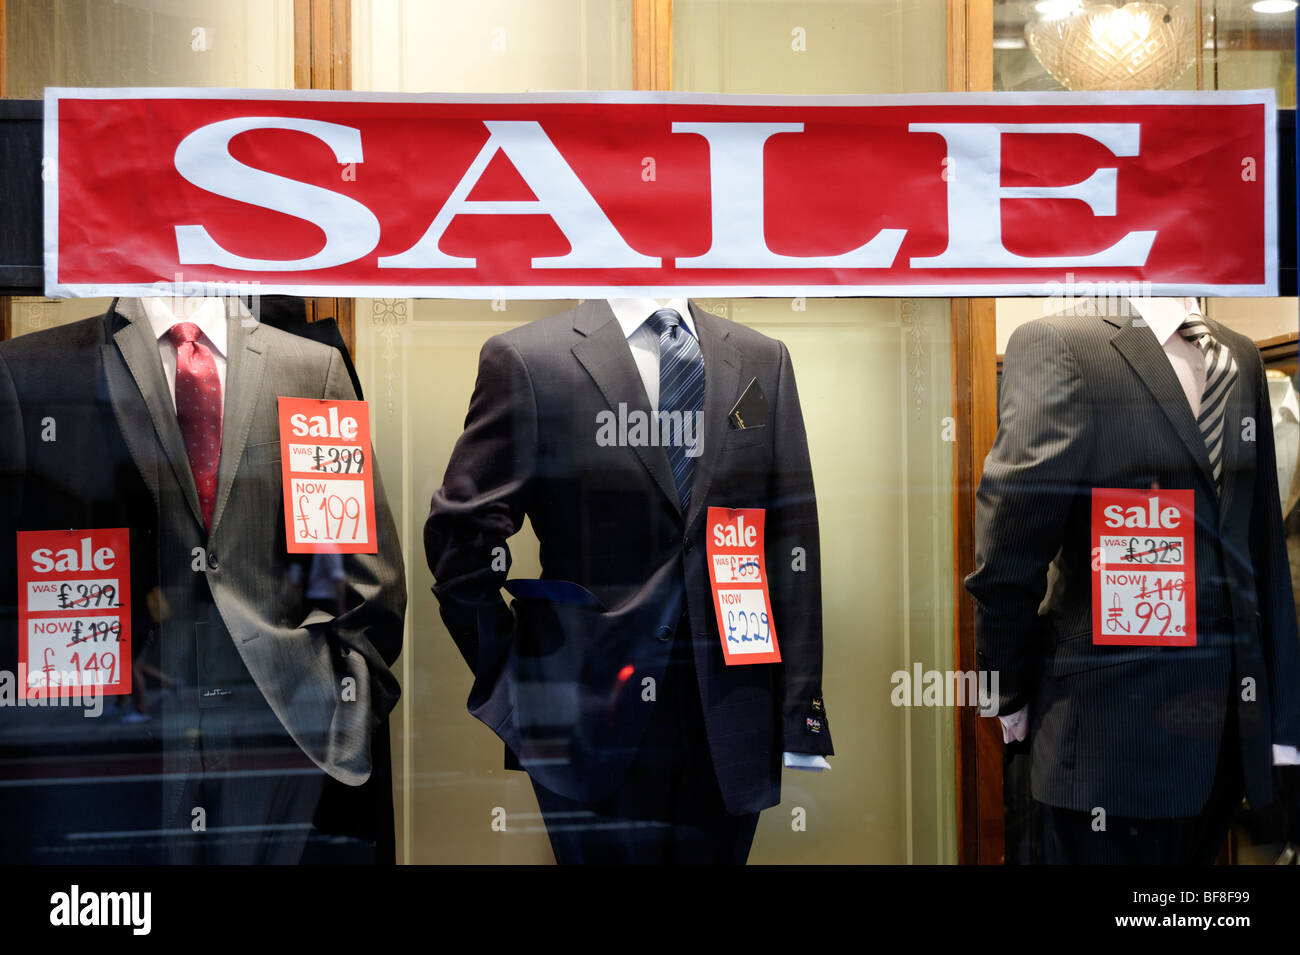 Discount sales on mens suits. London. UK 2009. - Stock Image